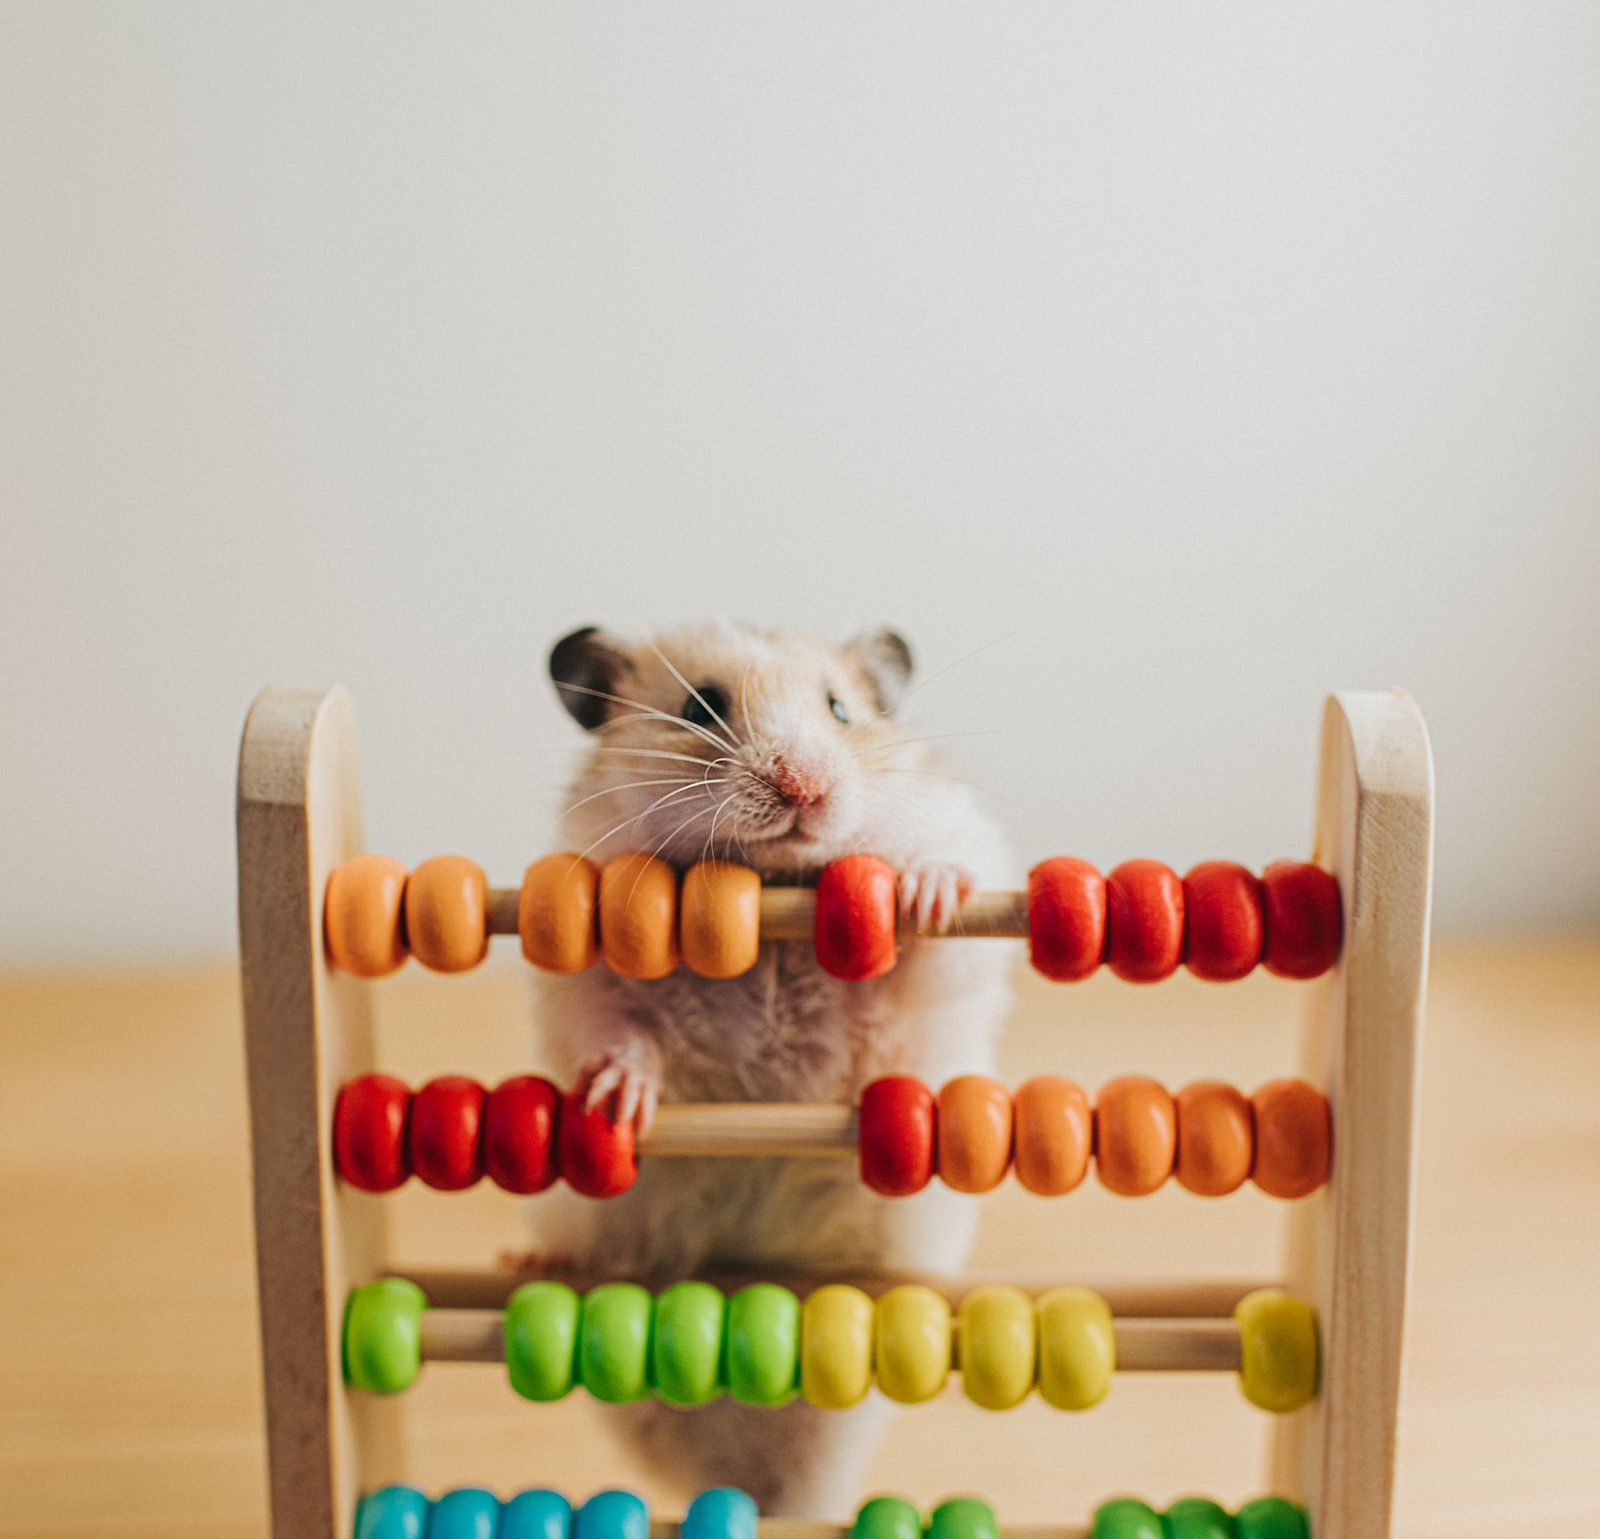 Hamster and an Abacus